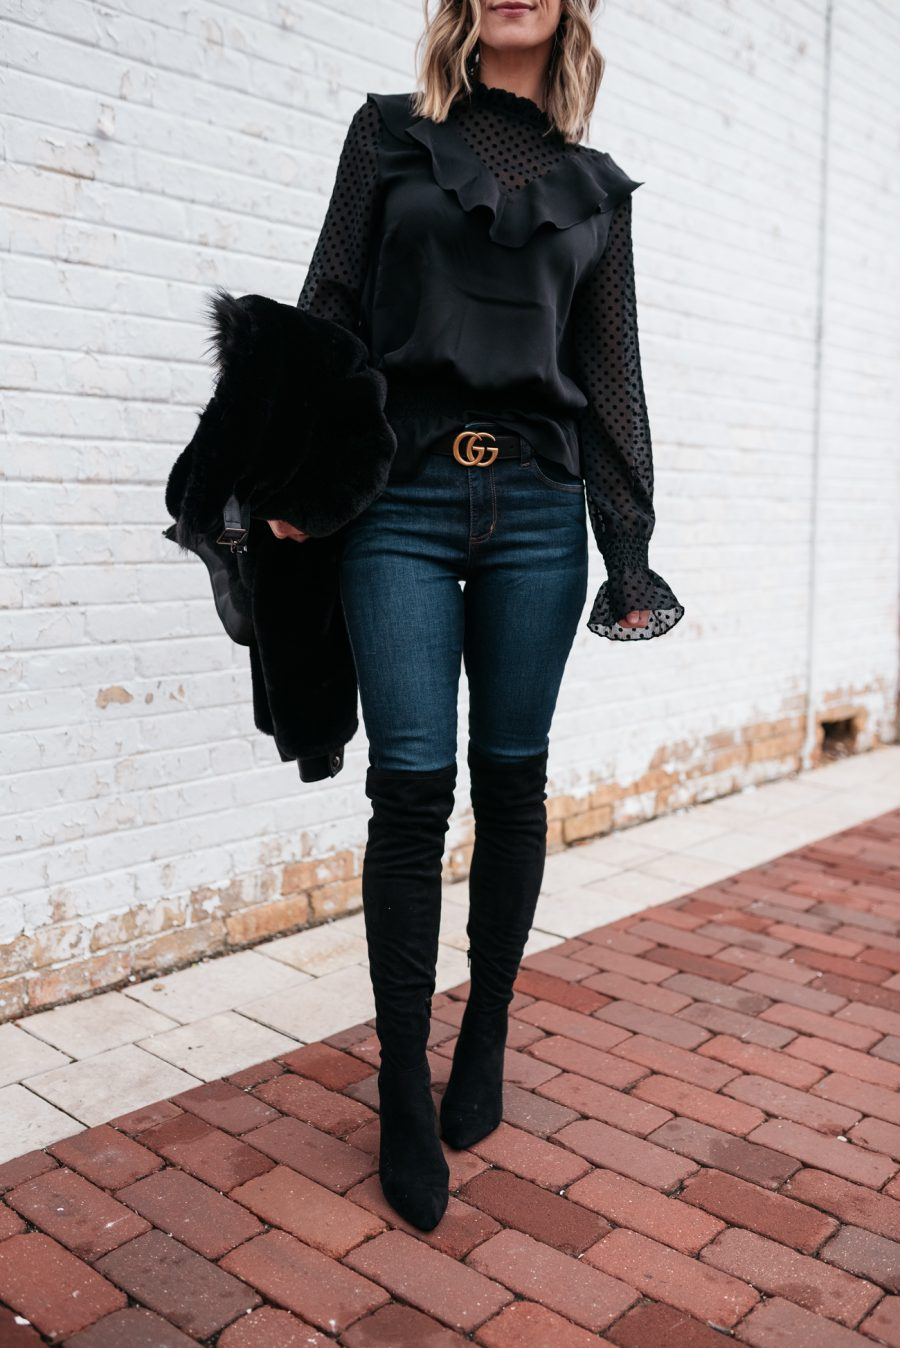 Faux fur jacket, black blouse, skinny jeans, and over the knee boots